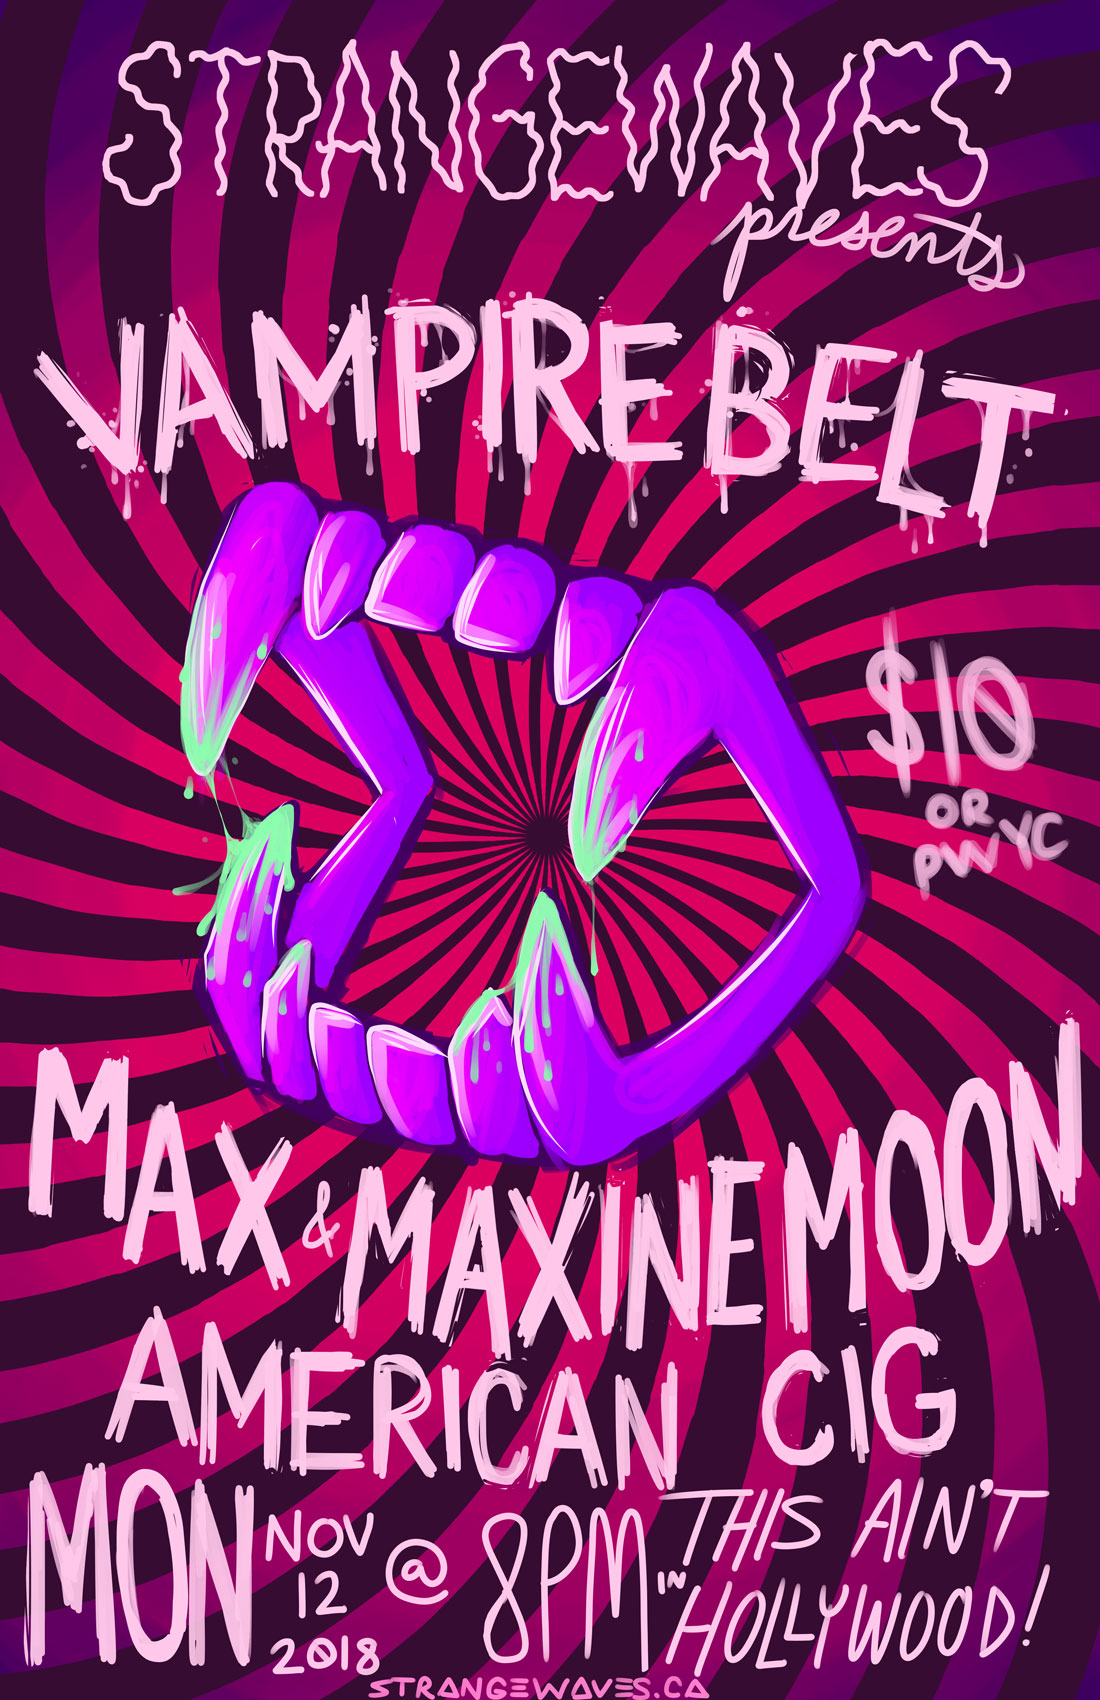 Vampire Belt (Corsano/Nace), Max & Maxine Moon, American Cig  @This Ain't Hollywood